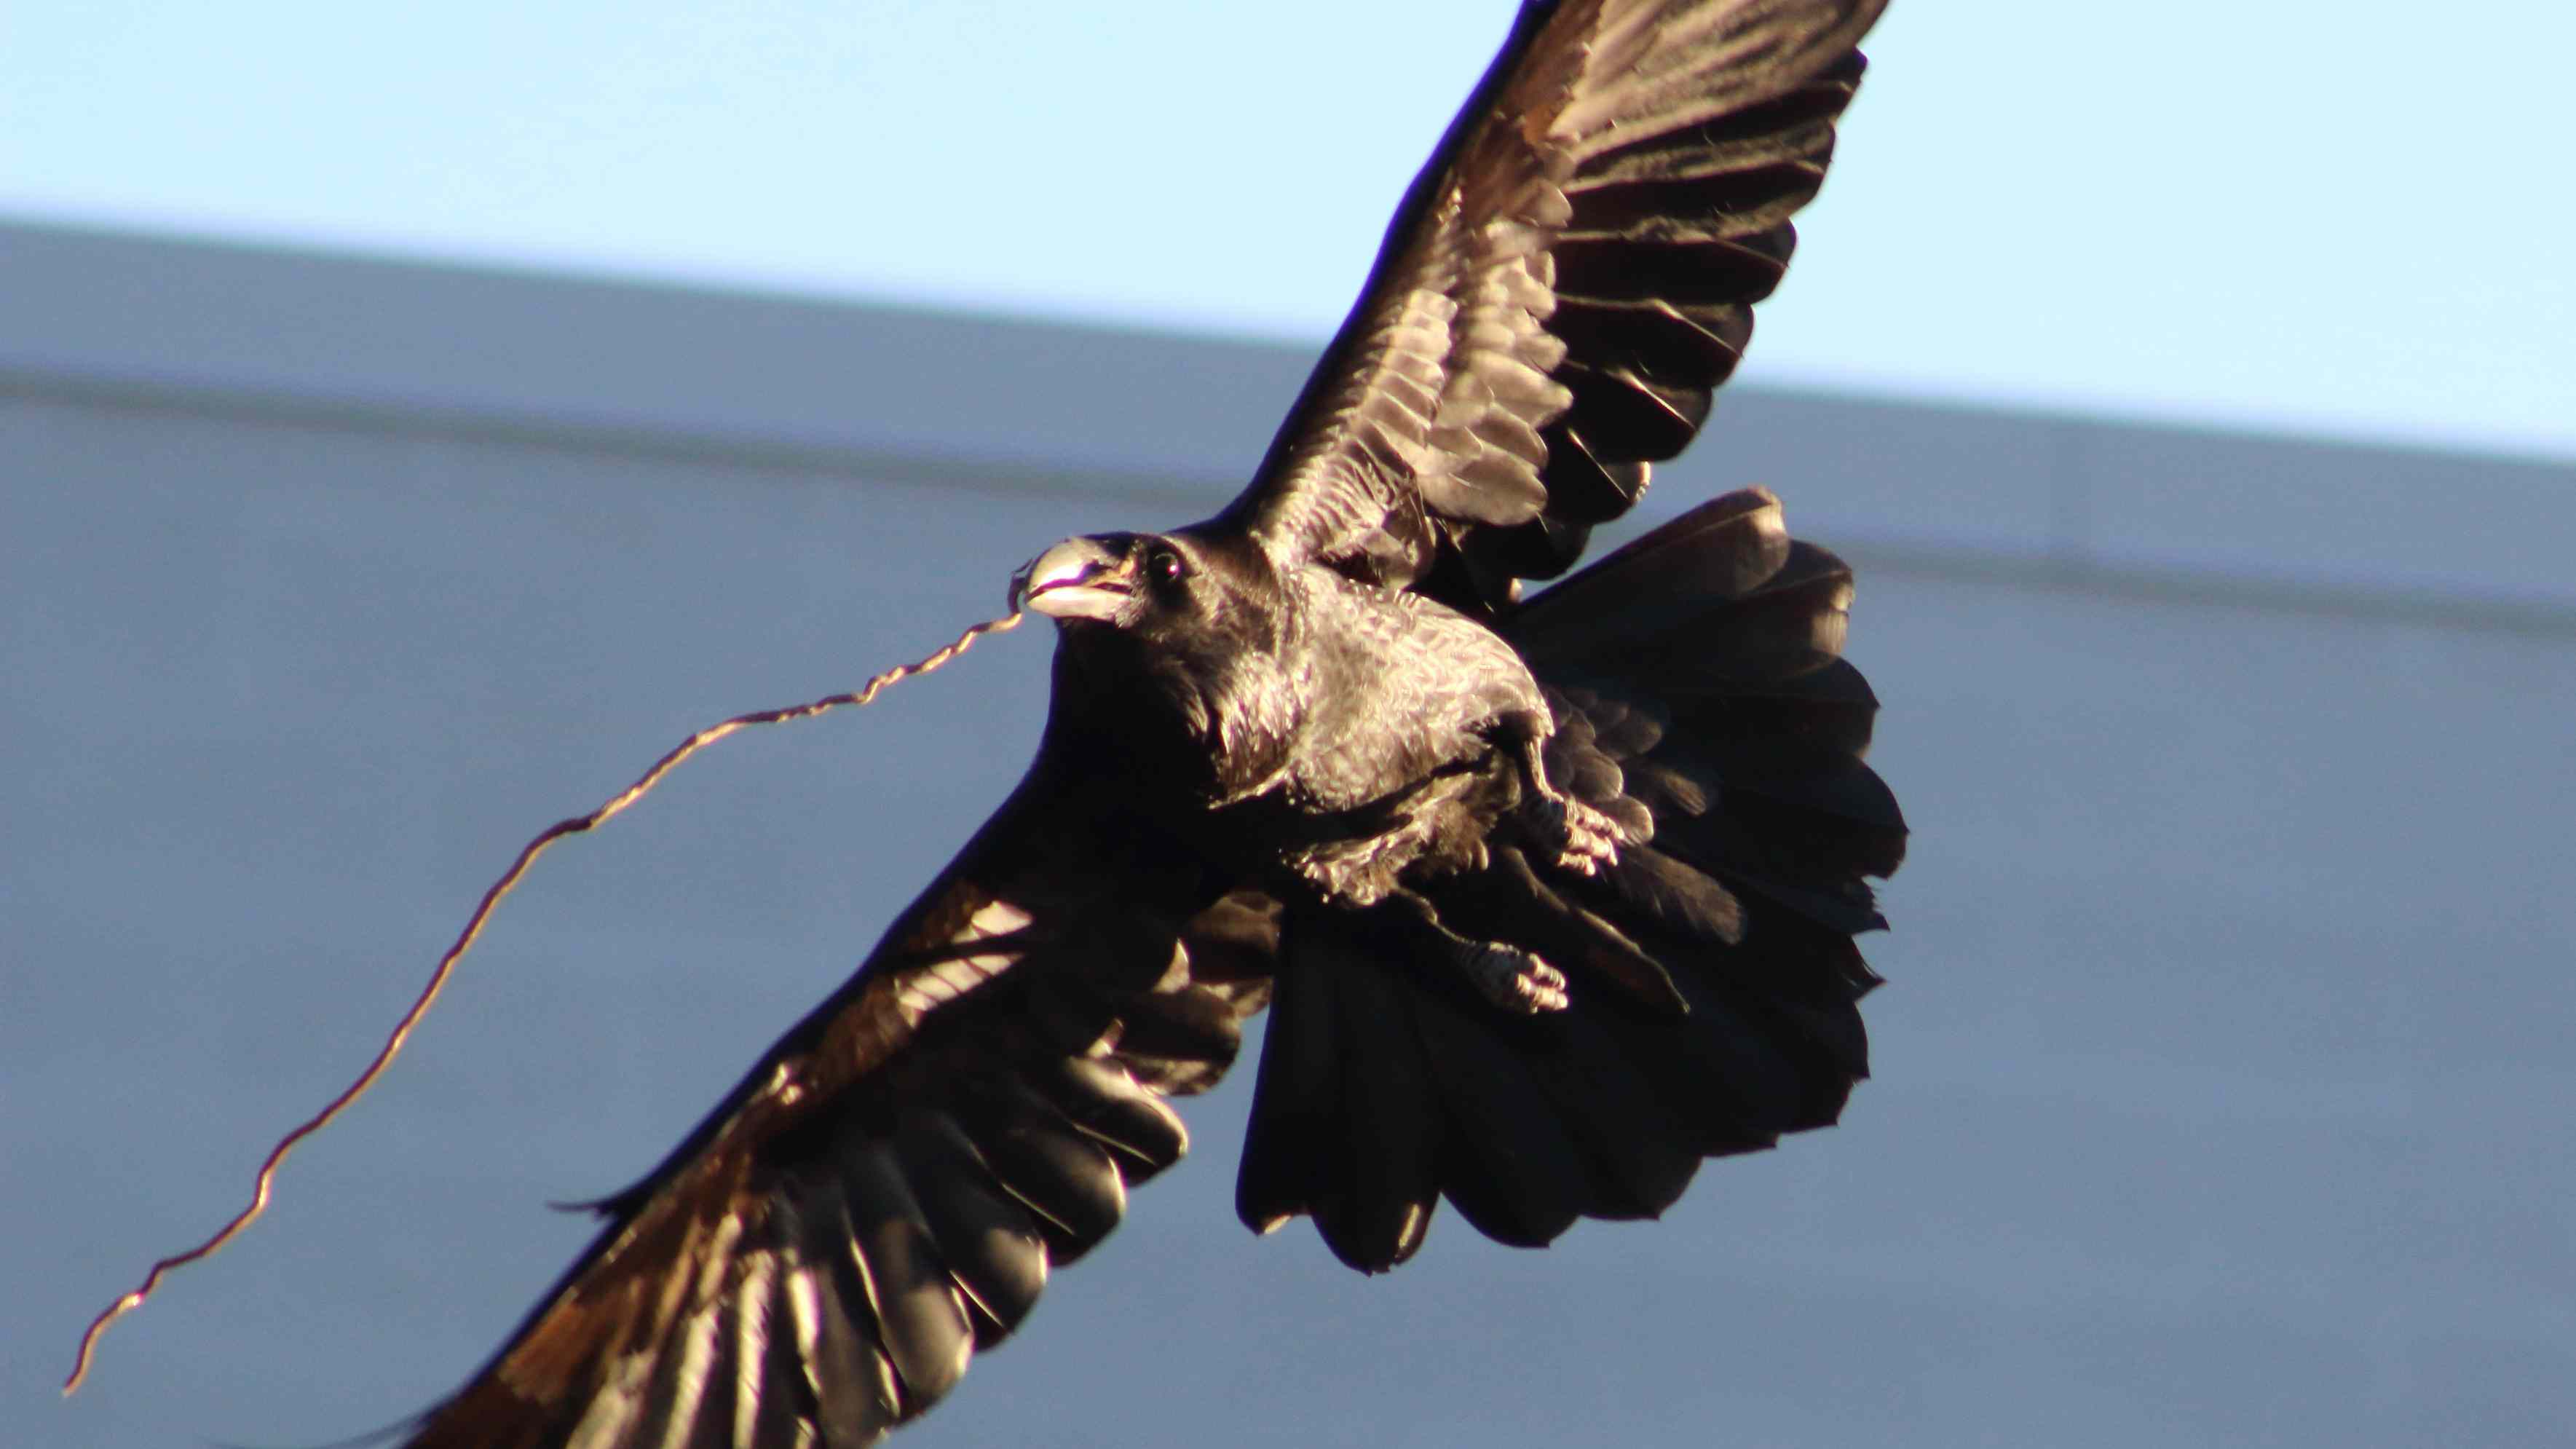 Close-Up Of Common Raven Carrying Stick In Mouth